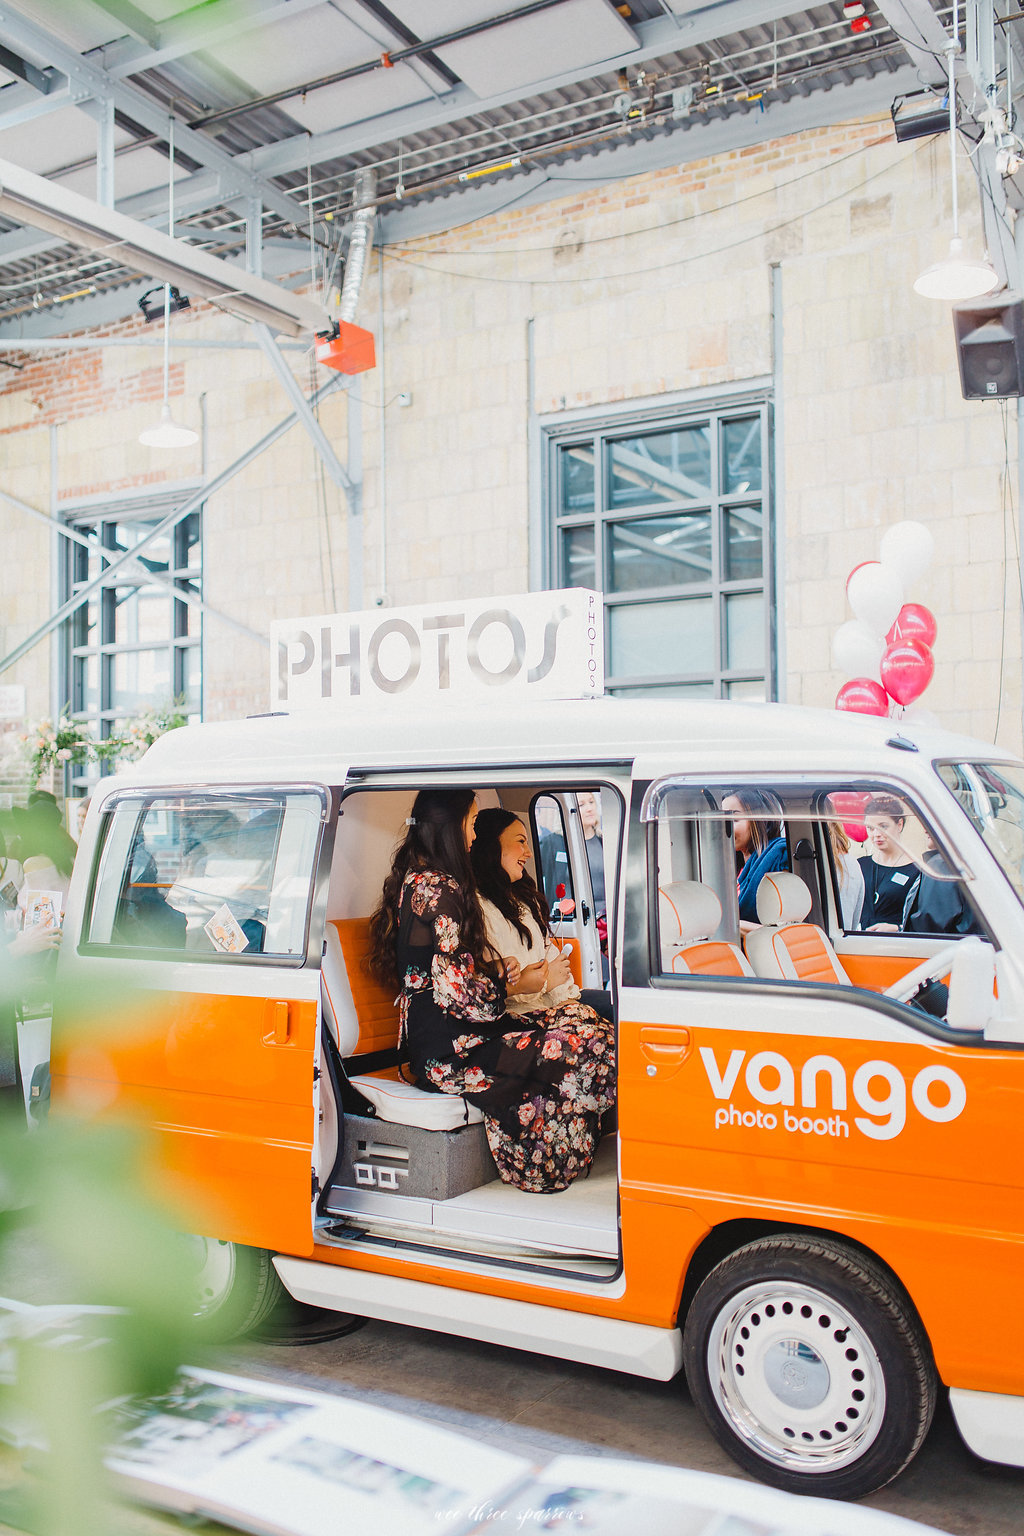 vango photo booth - Our photo booth is like non-other. Unique. Social. Fun. Ready for your special event.Email: Hello@VangoPhotoBooth.comContact: VincentPhone: (888) 468-9643Website: www.vangophotobooth.cominstagram ~  facebook ~  twitter